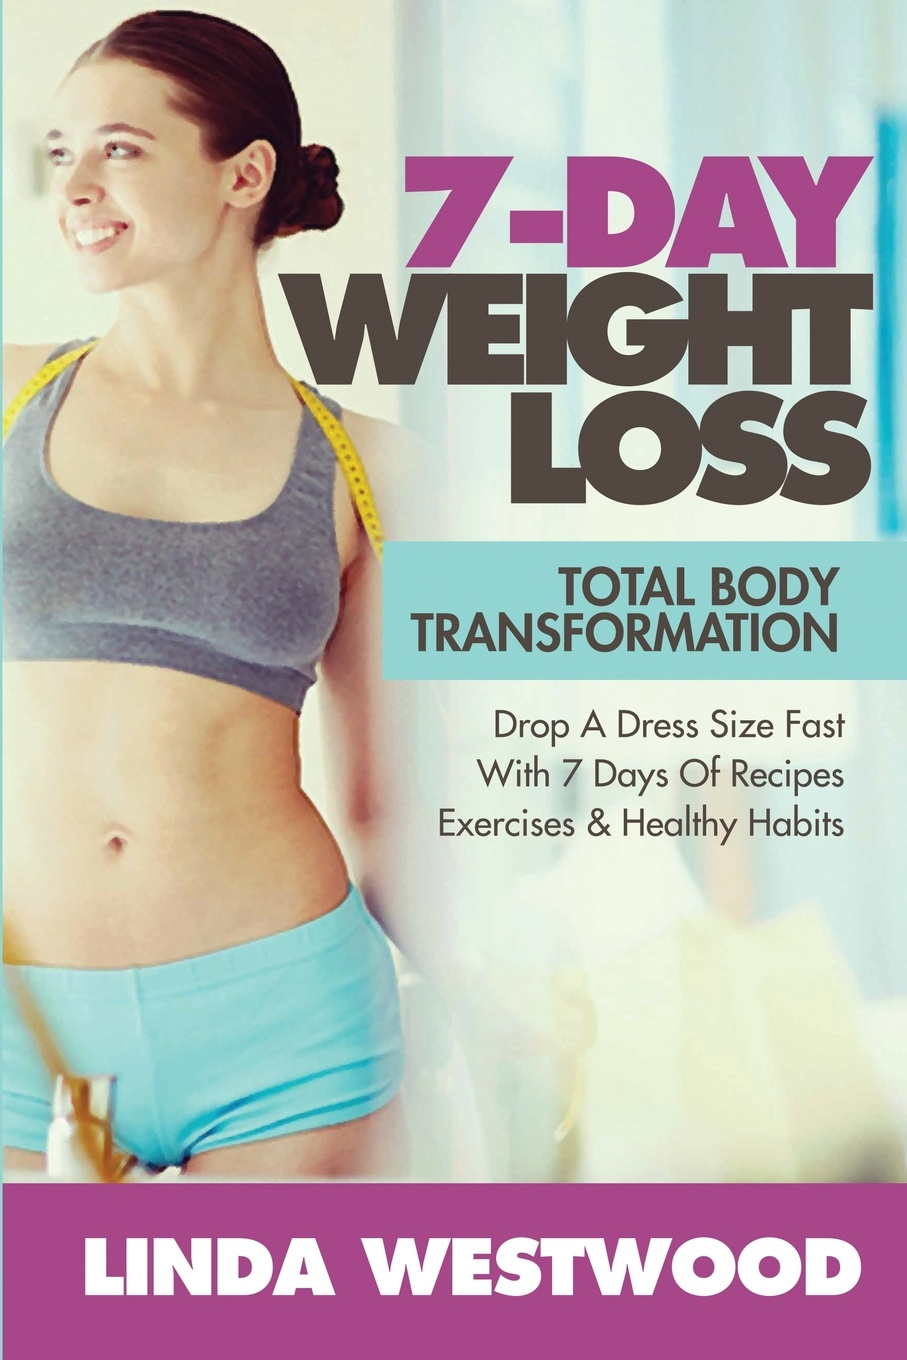 Фото - Linda Westwood 7-Day Weight Loss (2nd Edition). Total Body Transformation - Drop A Dress Size Fast With 7 Days of Recipes, Exercises & Healthy Habits! karen parker carter irene healthy cooking fat loss with clean eating